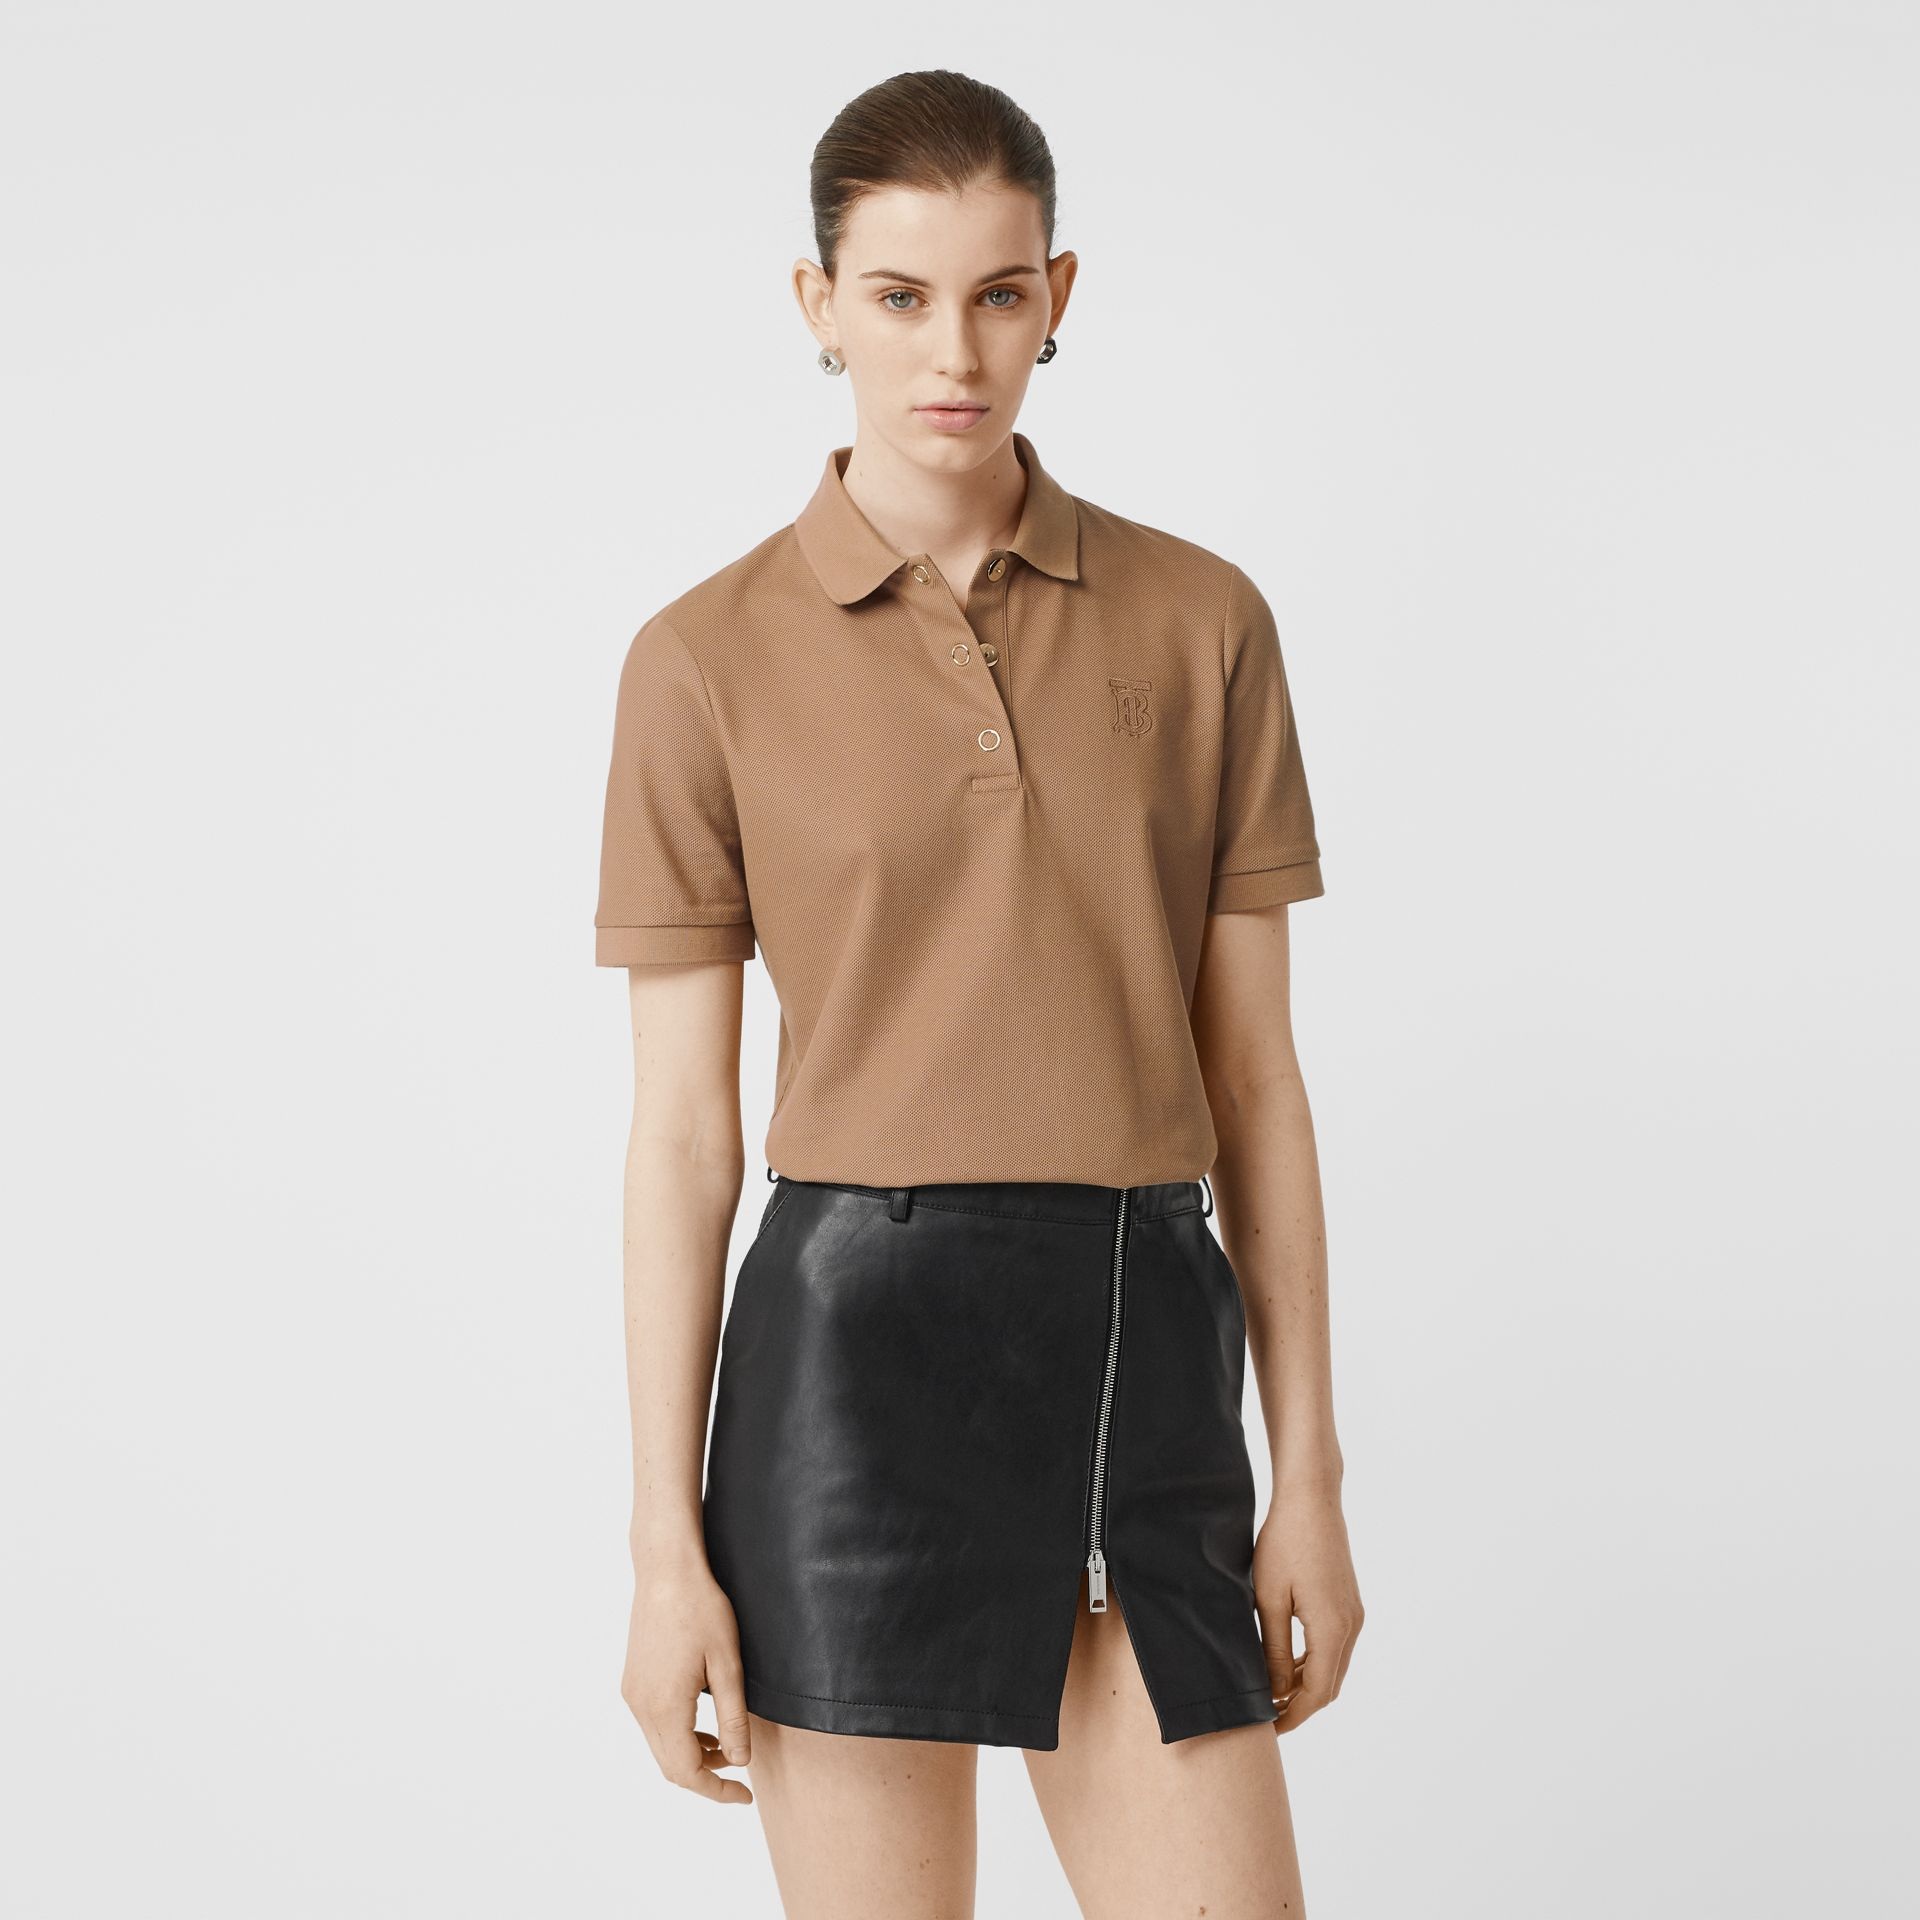 Monogram Motif Cotton Piqué Polo Shirt in Camel - Women | Burberry United Kingdom - gallery image 4